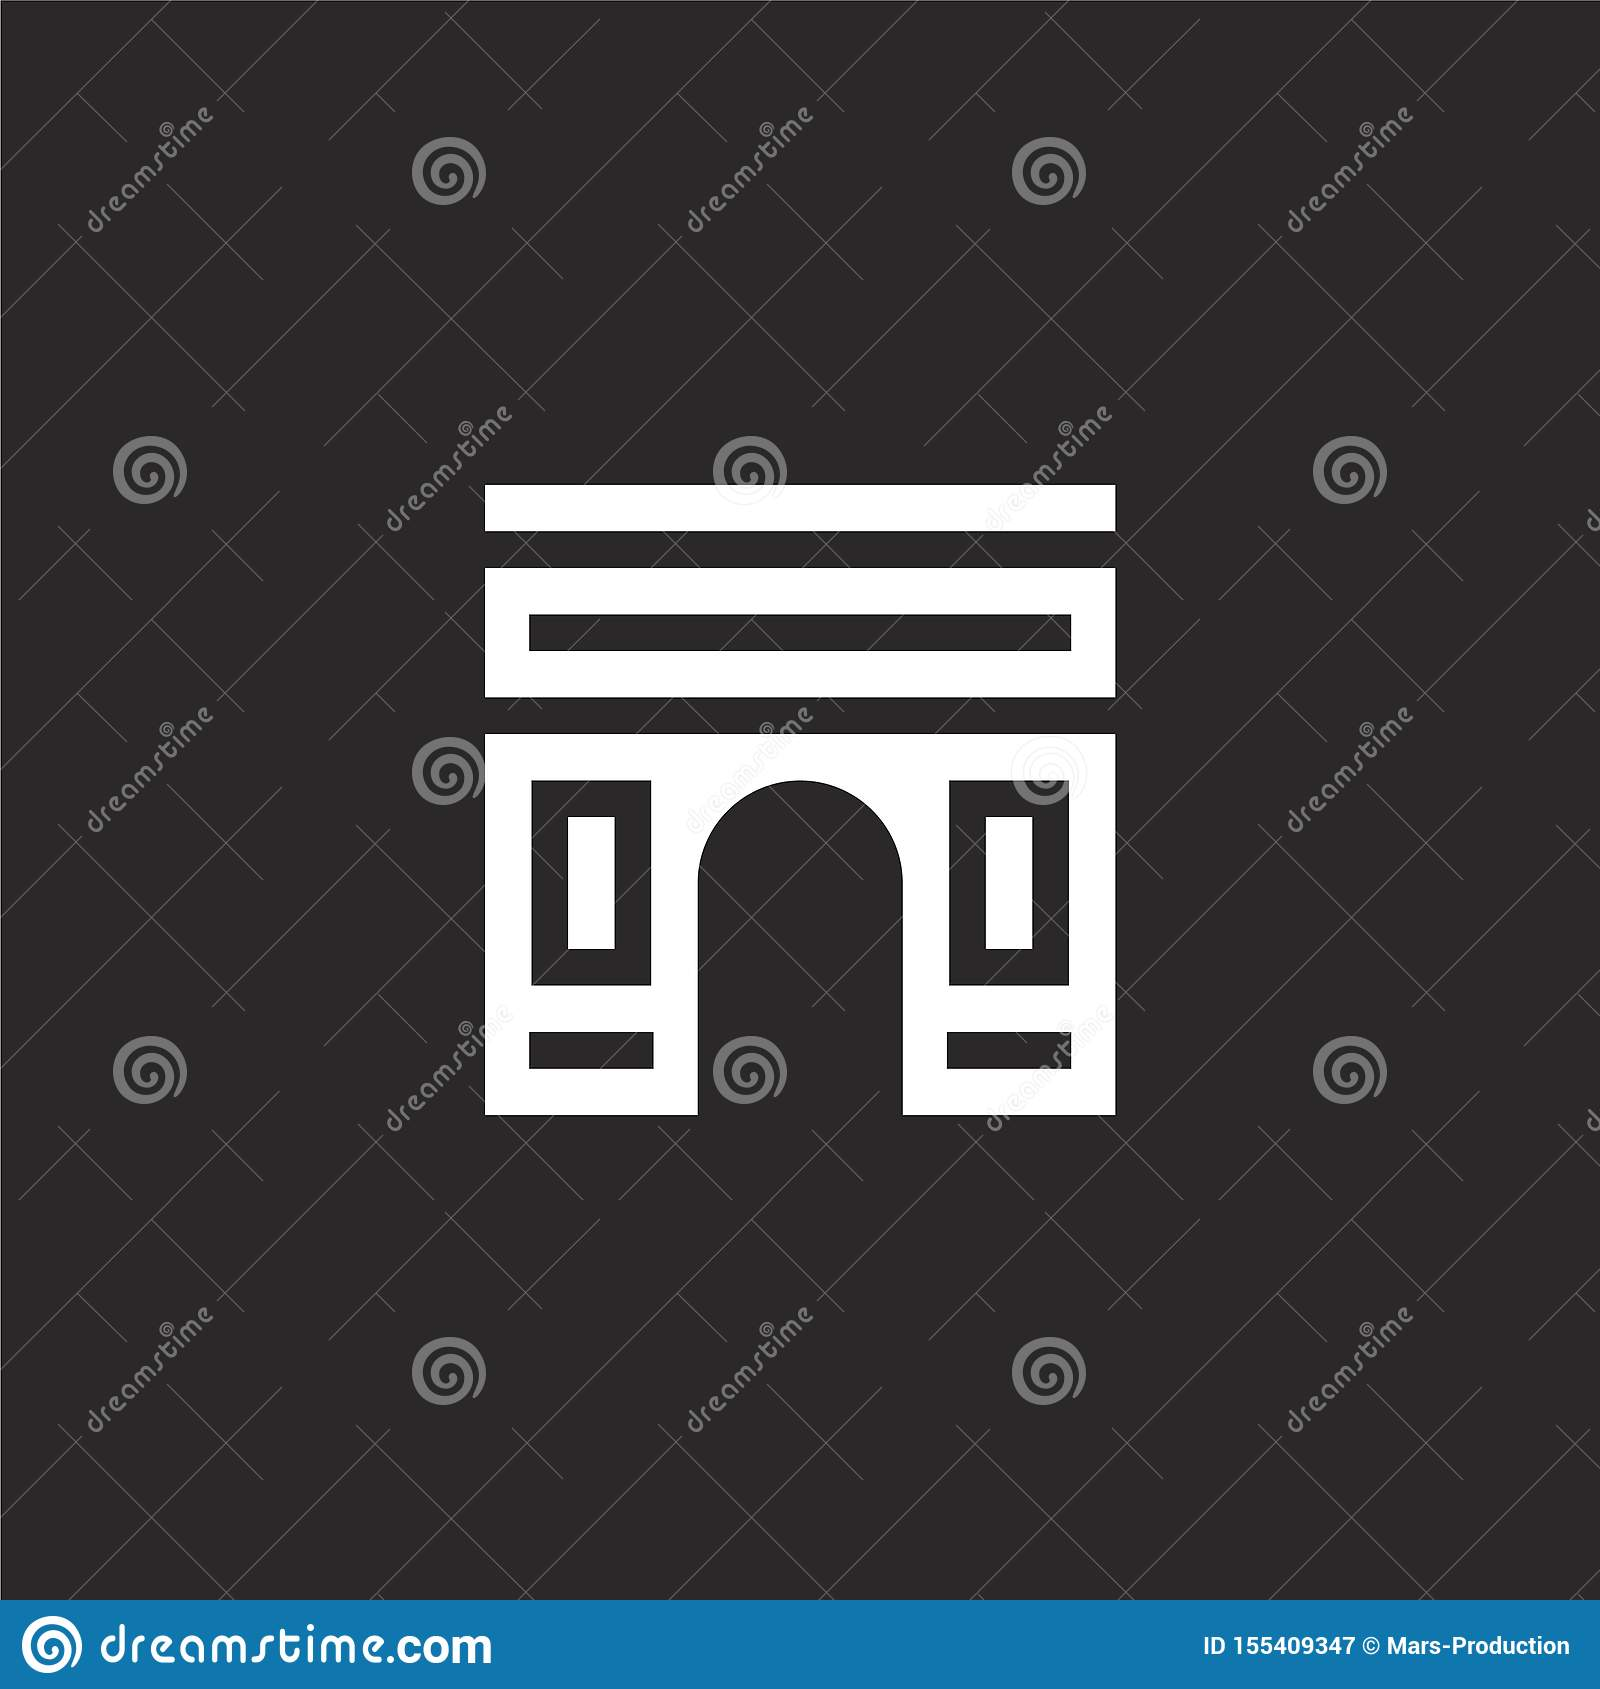 arch icon. Filled arch icon for website design and mobile, app development. arch icon from filled city life collection isolated on